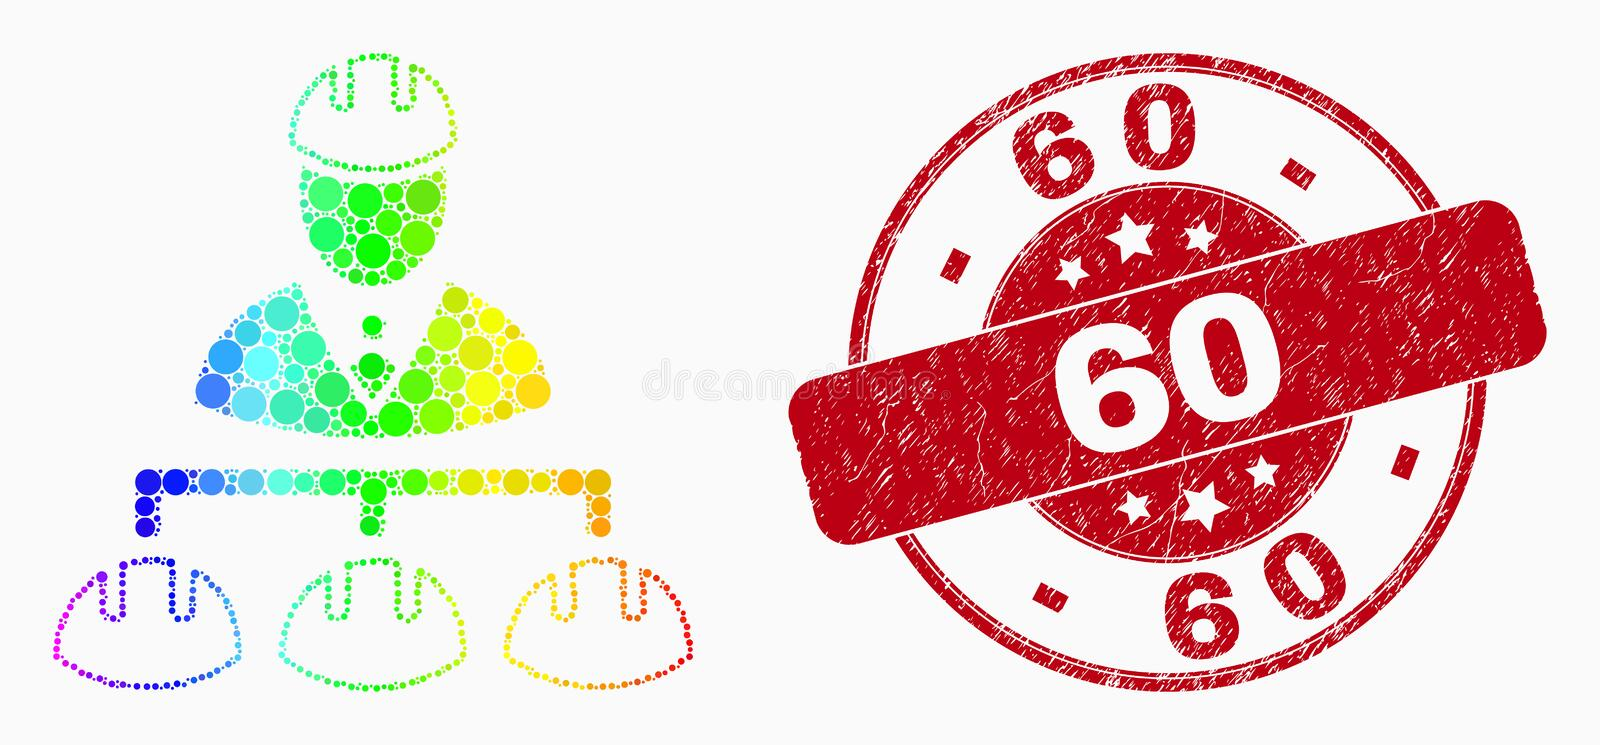 Vector Bright Dotted Engineer Hierarchy Icon and Distress 60 Watermark stock illustration